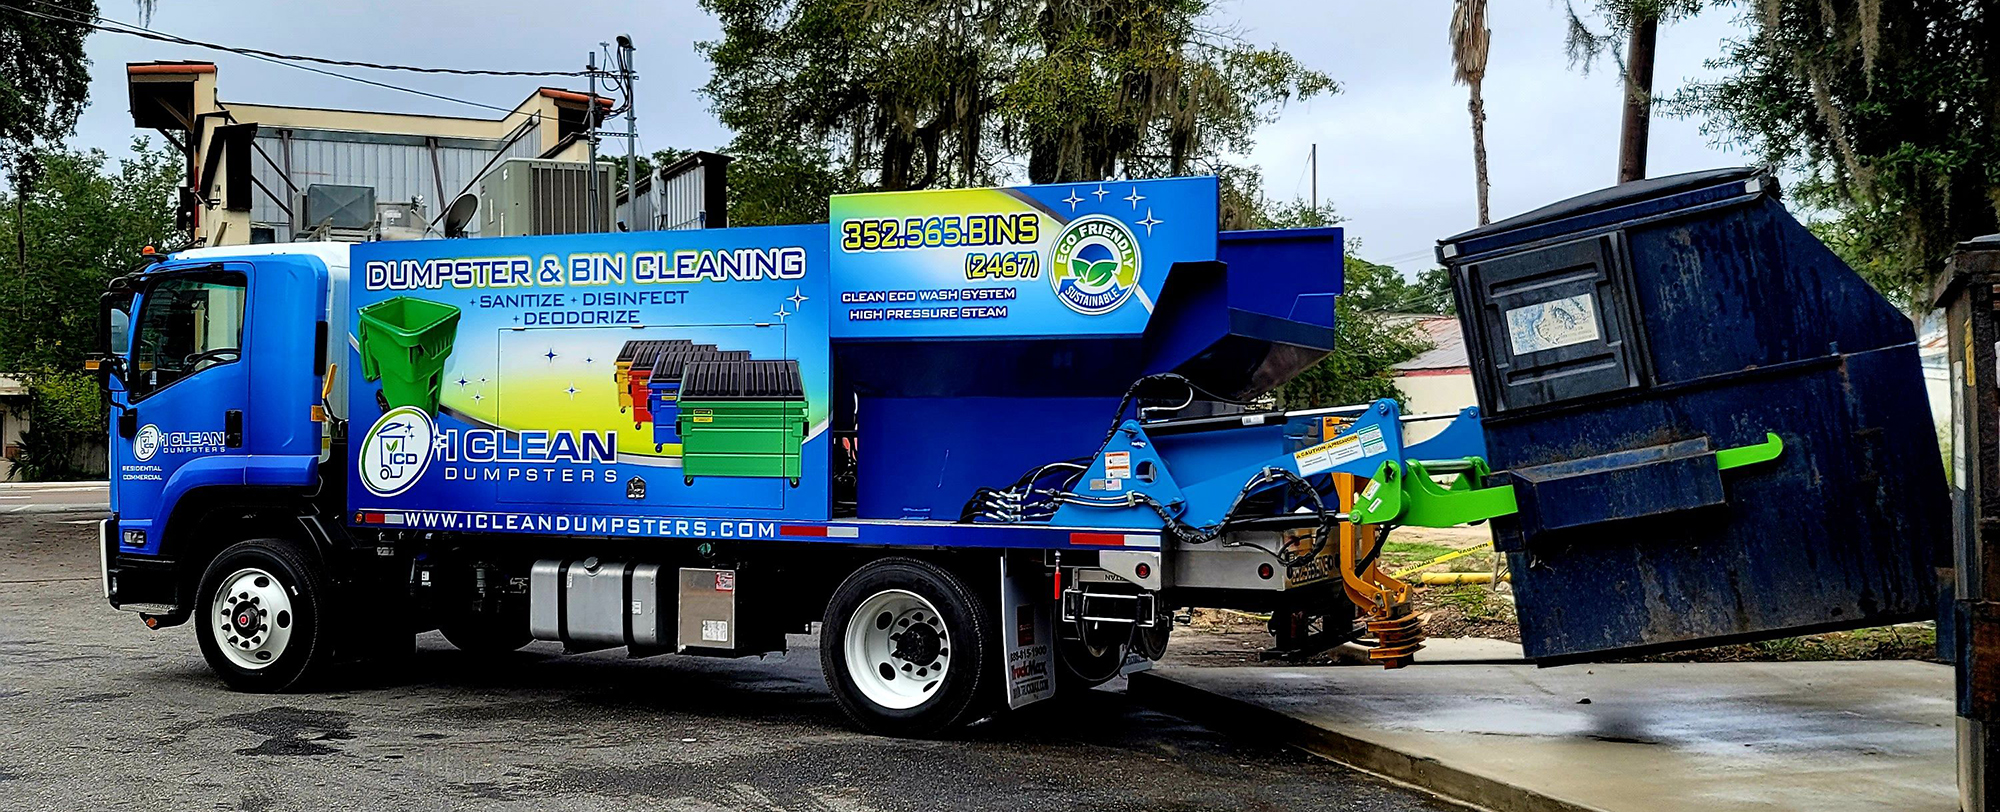 I CLEAN DUMPSTERS BIN CLEANING SERVICES